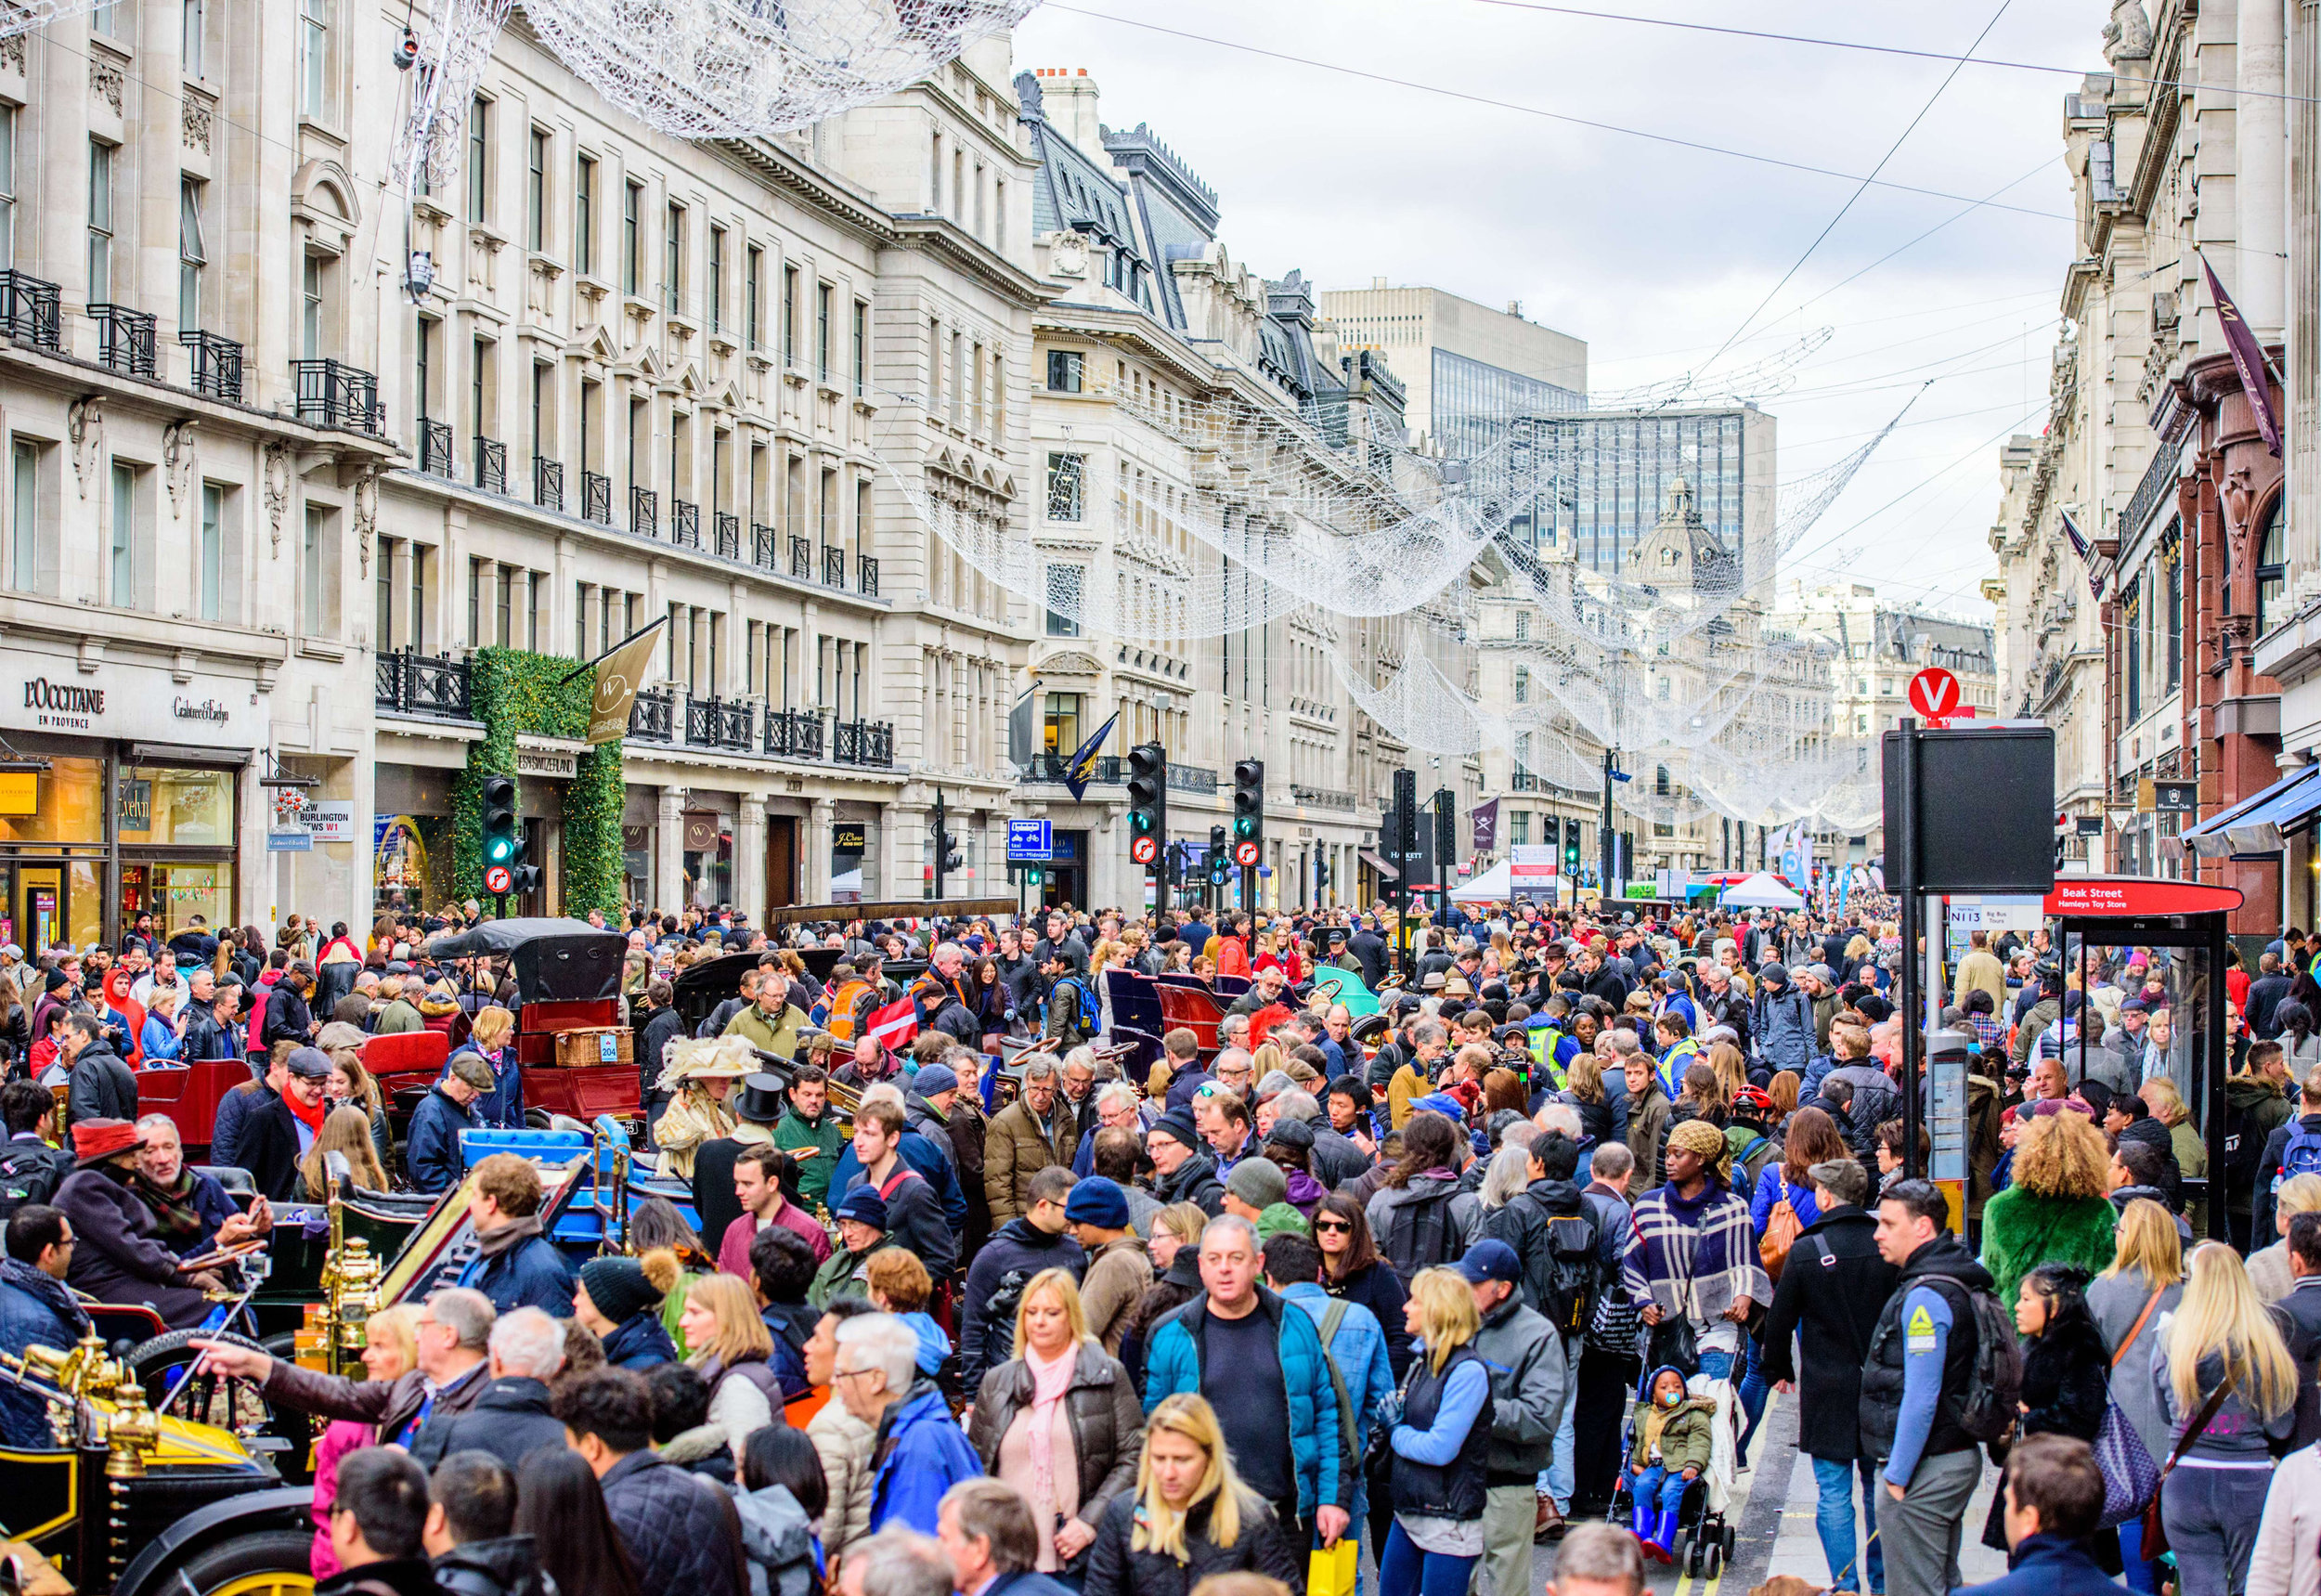 Huge-crowds-turn-out-for-Regent-Street-Motor-Show.jpg